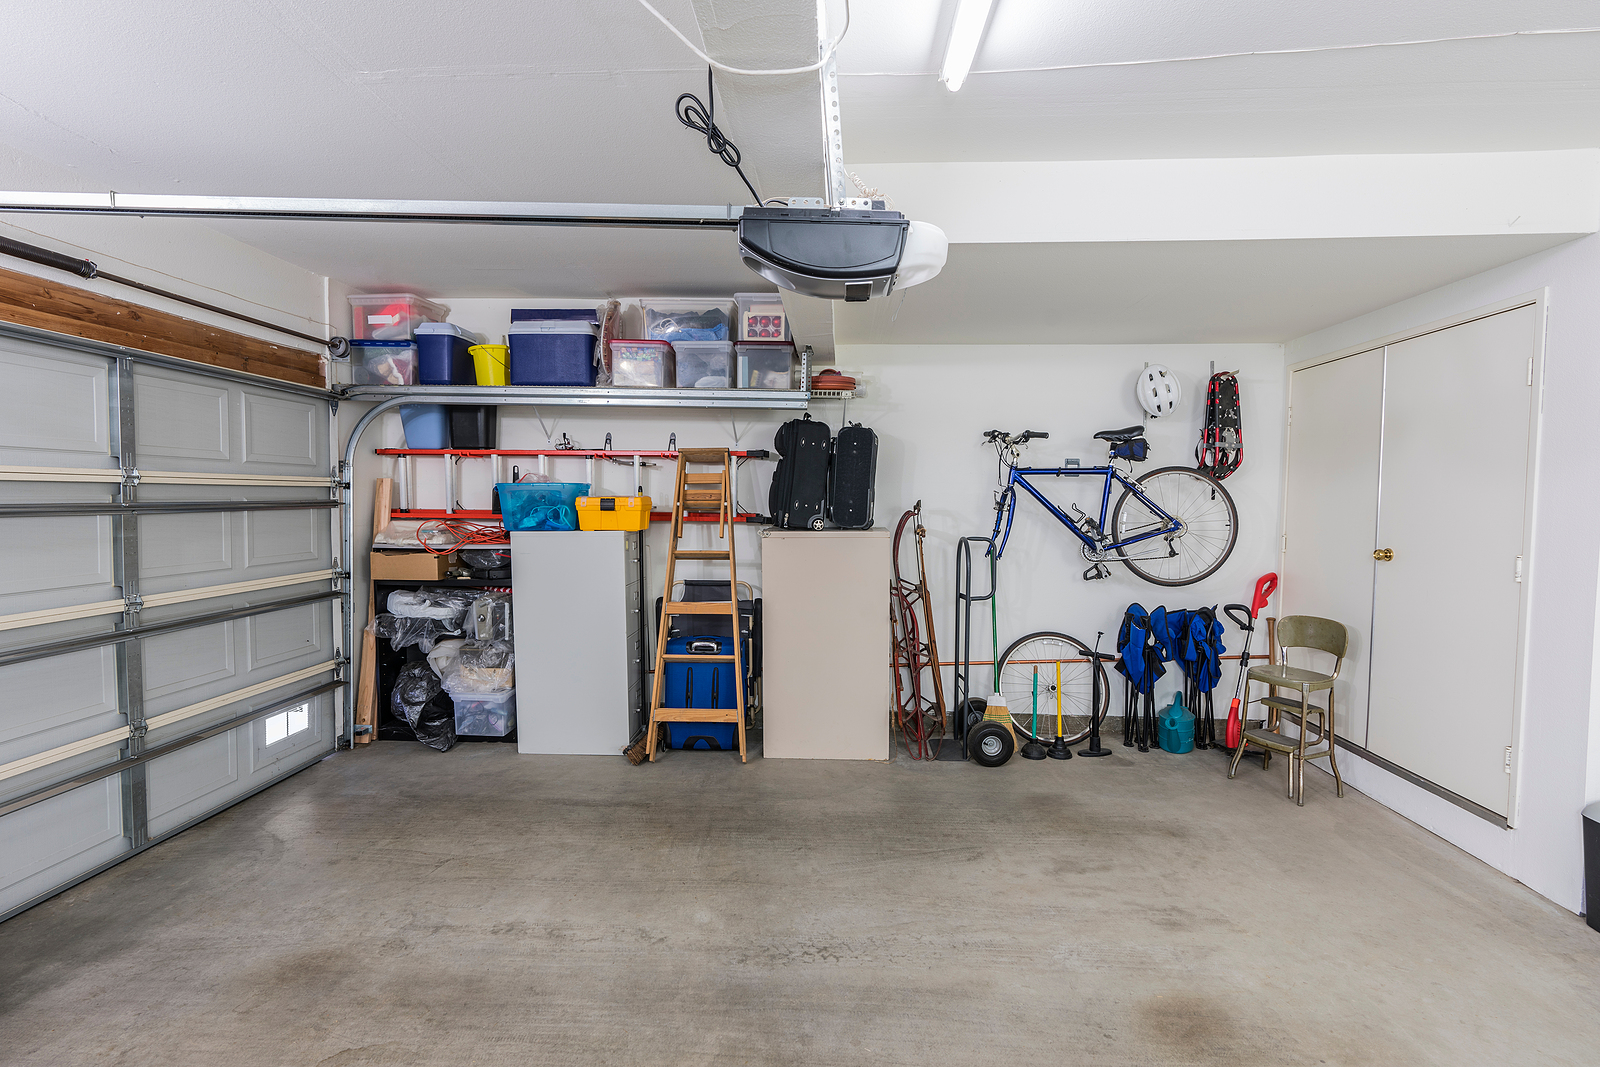 Organized-Residential-Two-Car-Garage-with-Tools-File-Cabinets-and-Sports-Equipment